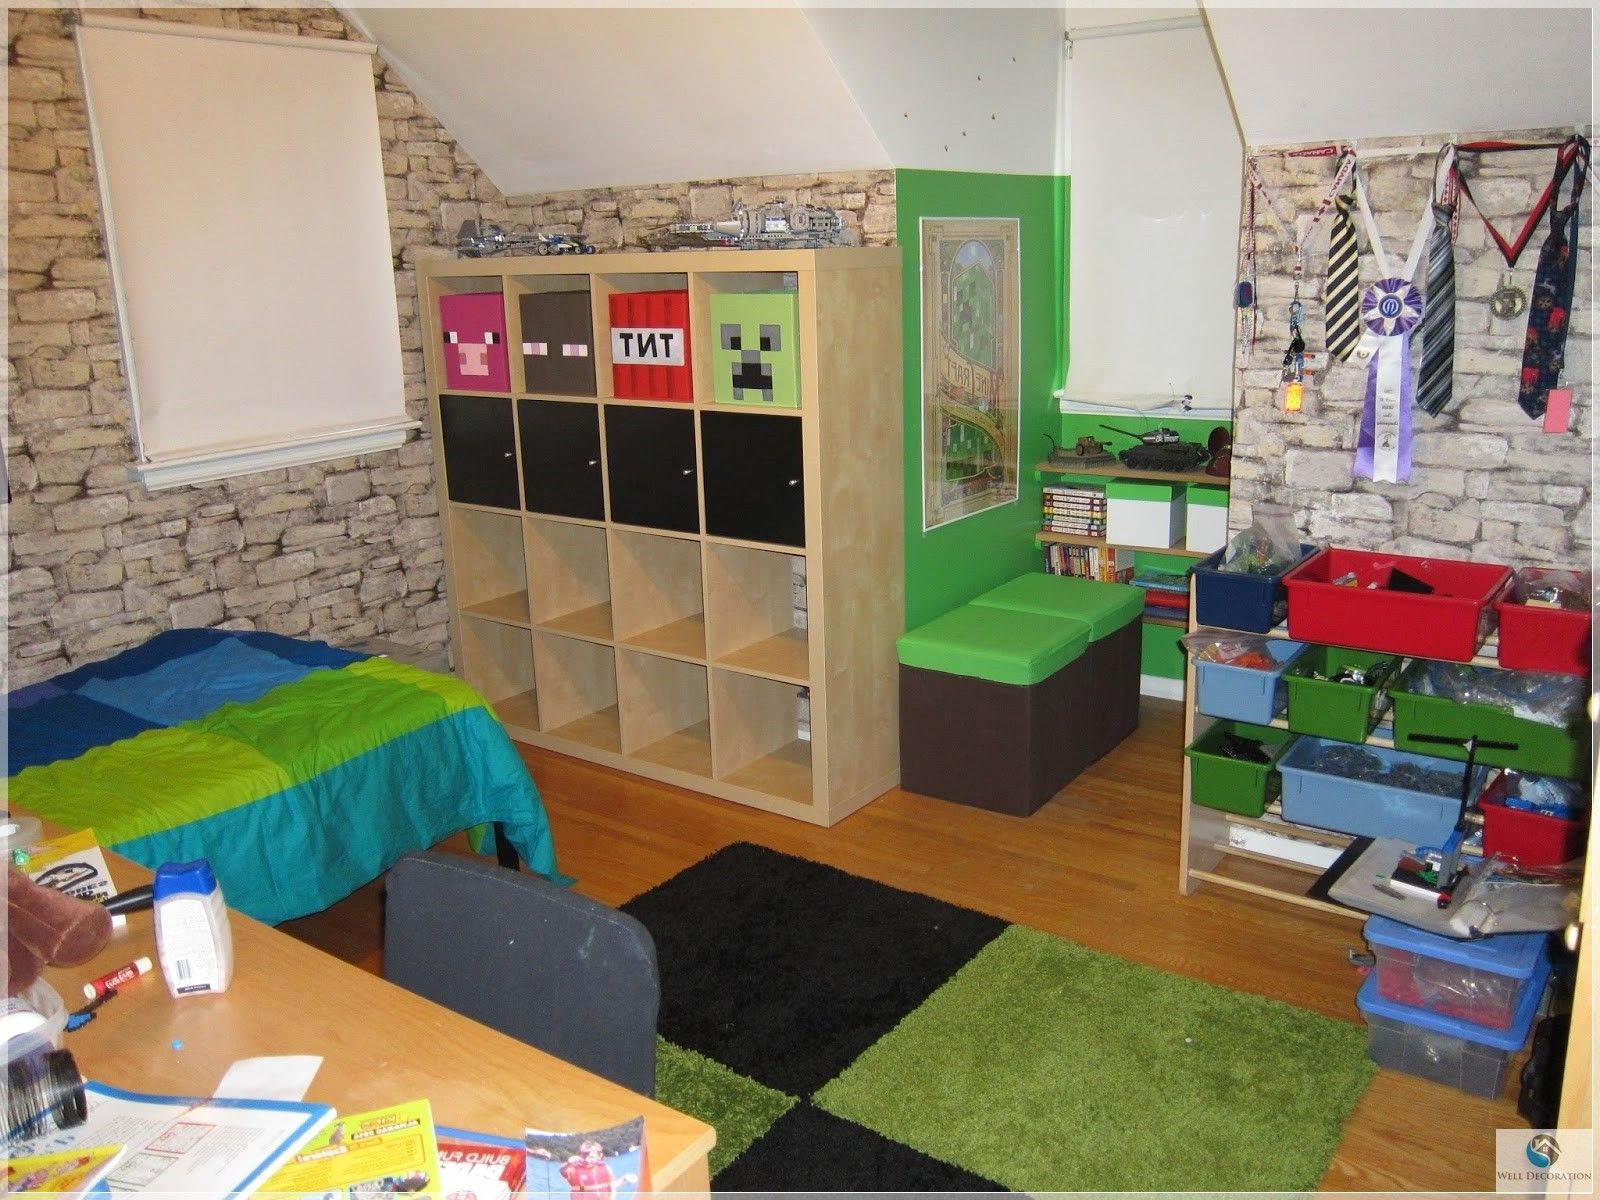 Ravishing Kids Room Designs For Boys Minecraft Themed Bedroom Idea With  Which Is. KinderzimmerMinecraft Schlafzimmer ...